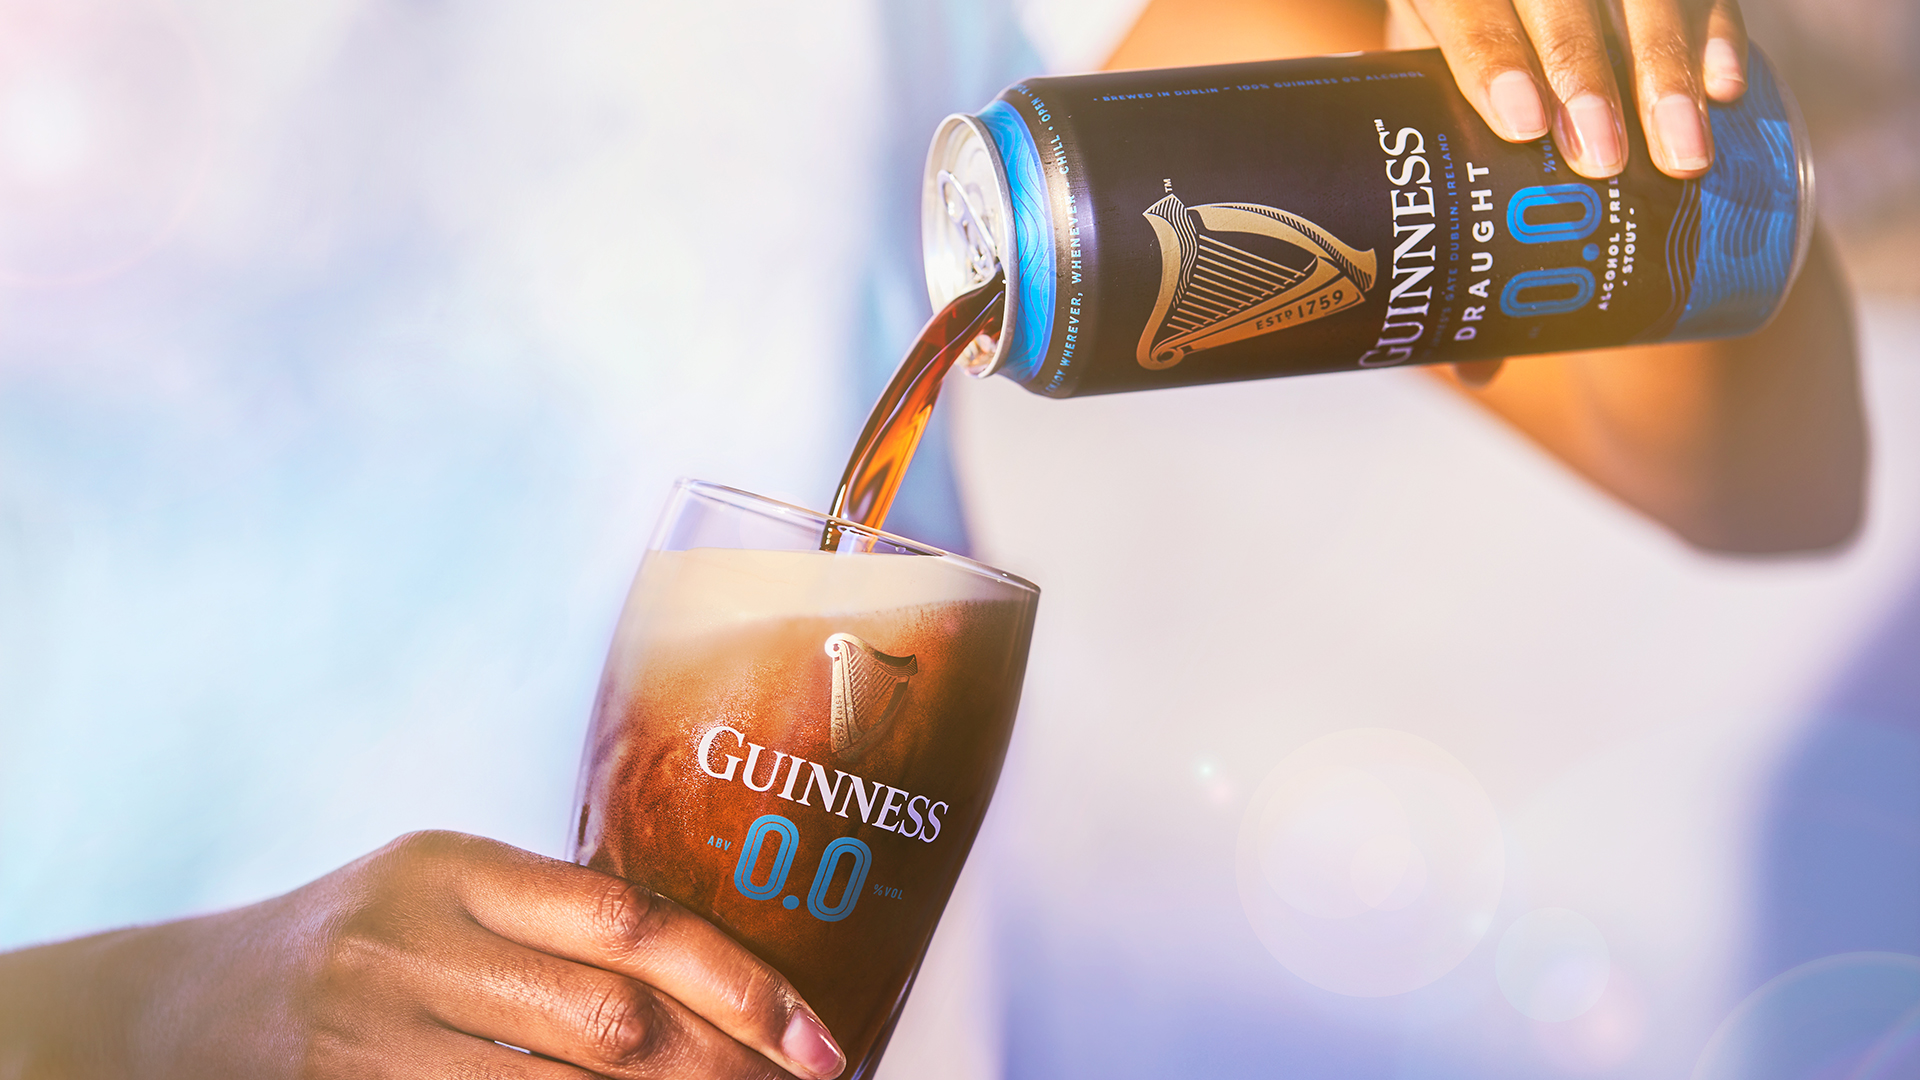 Guinness announces launch of Guinness 0.0,